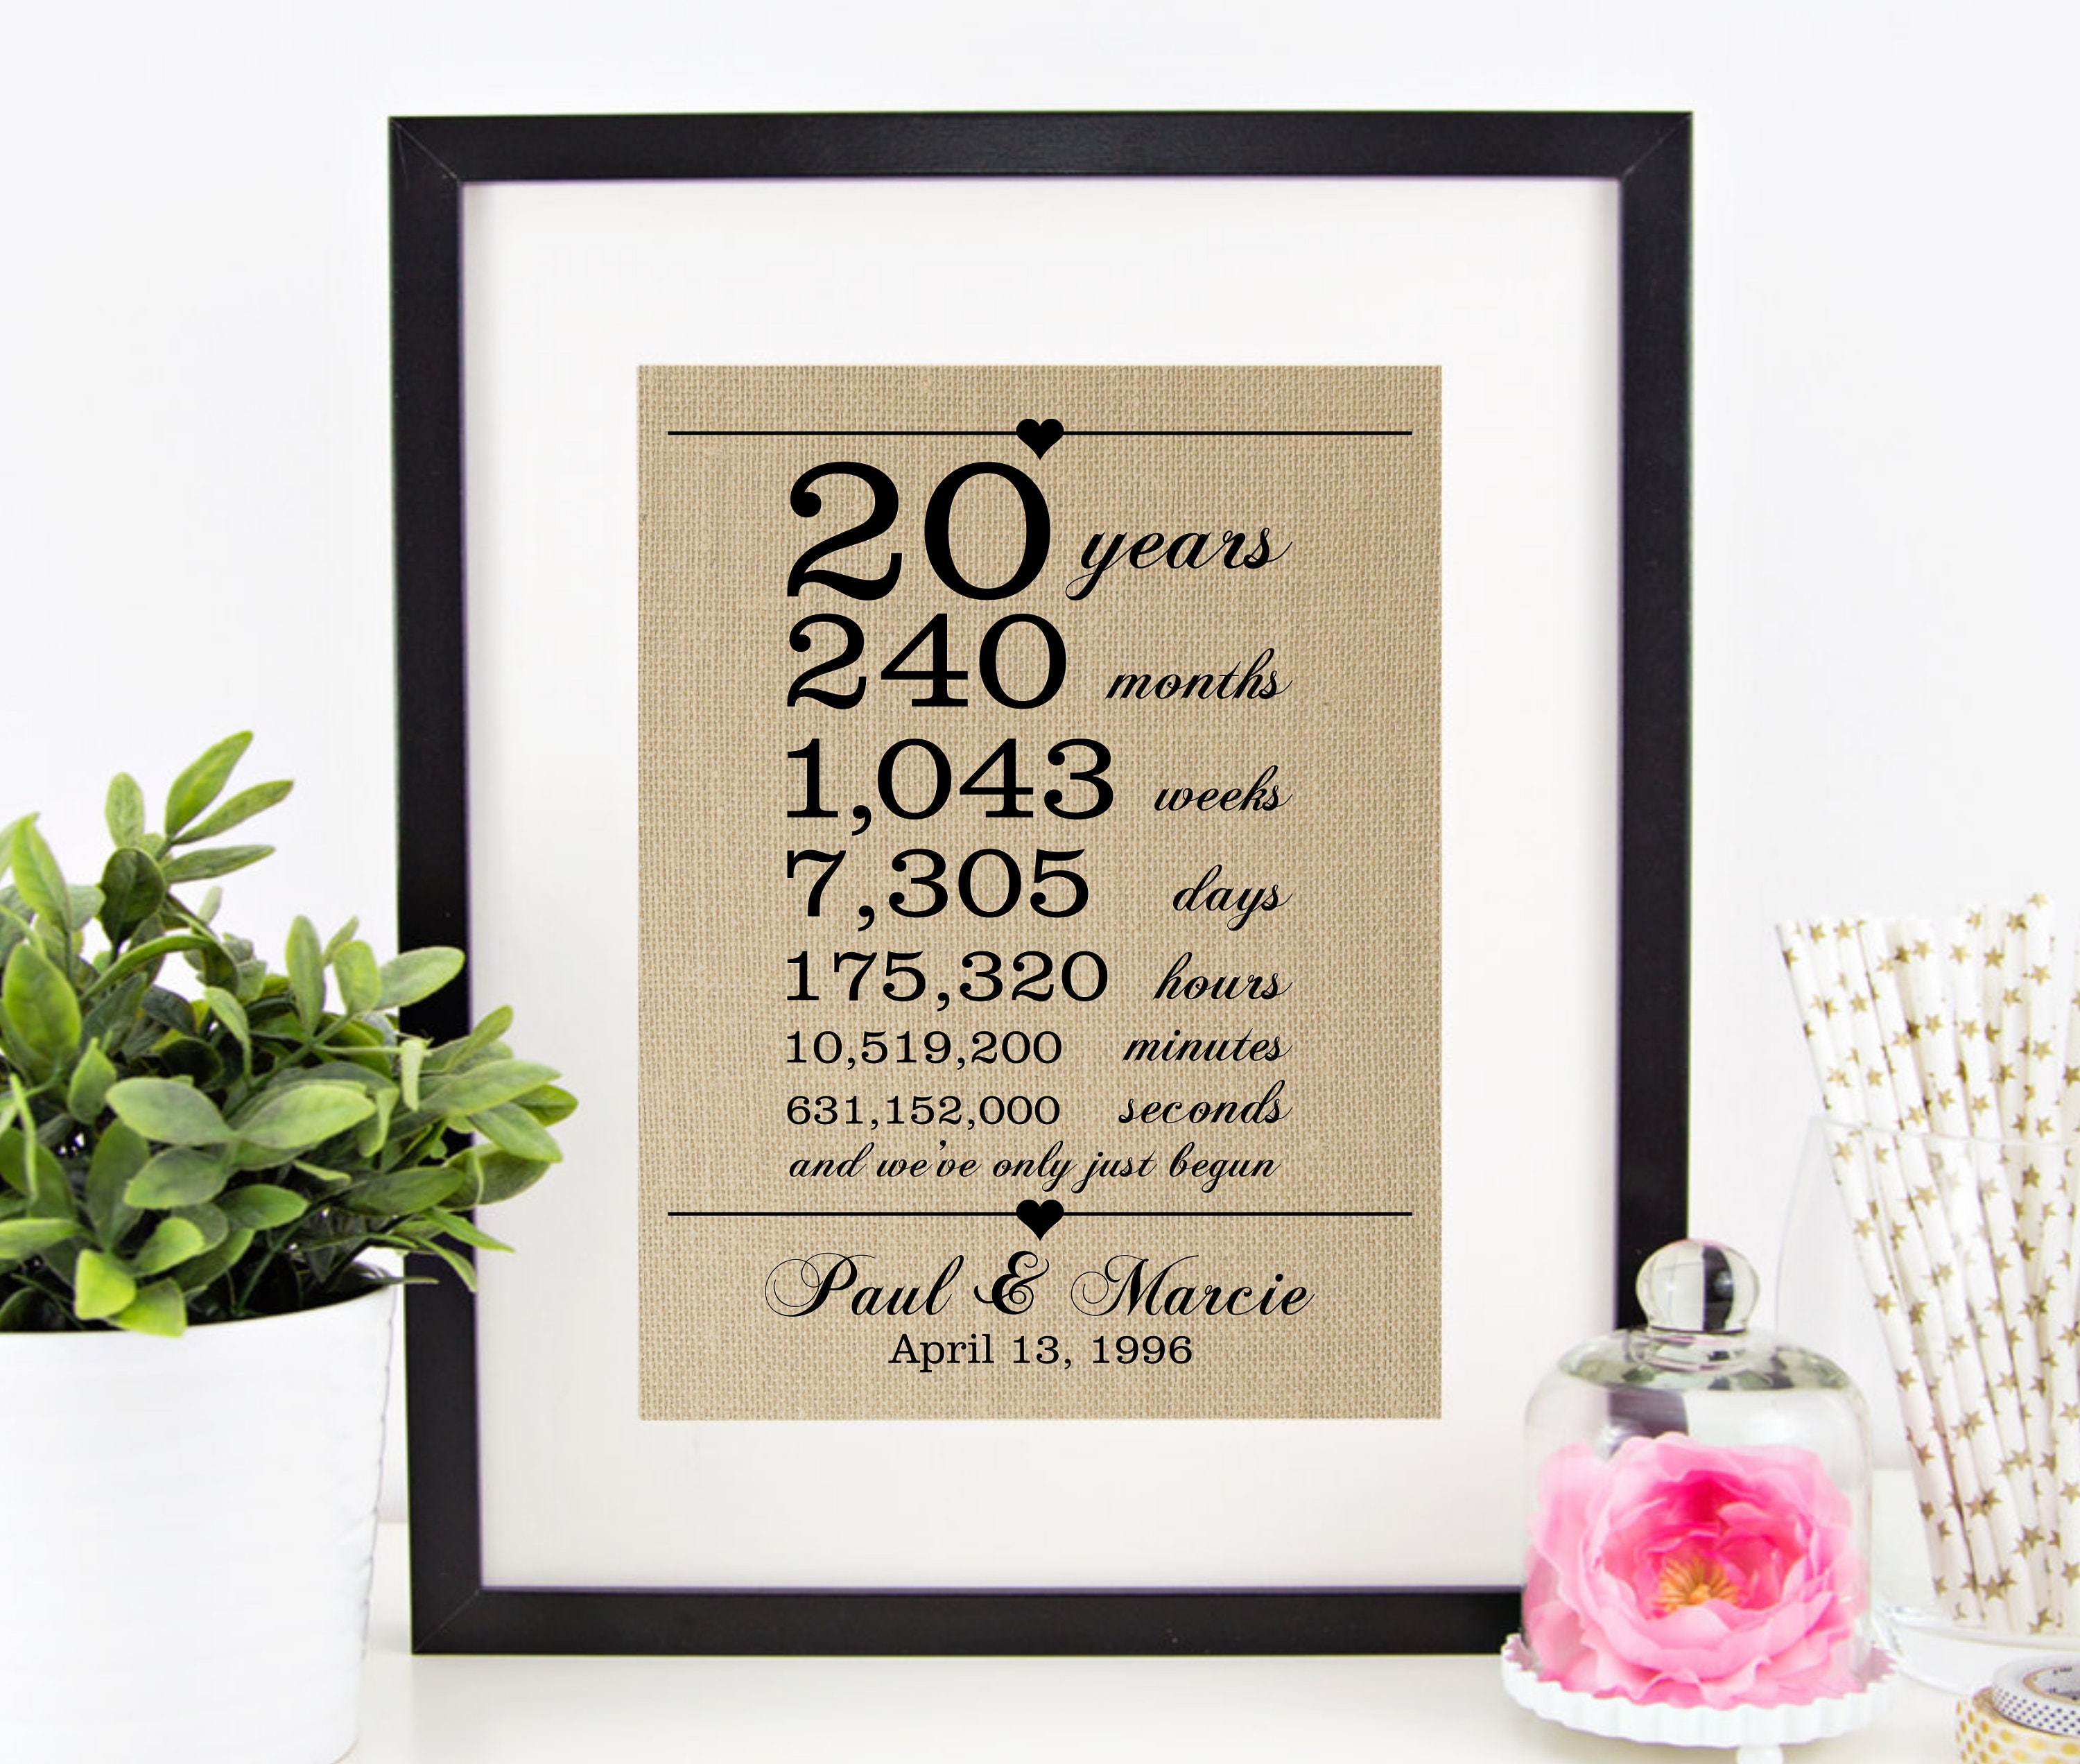 Twentieth Wedding Anniversary Gift: 20th Wedding Anniversary Gift For Wife Husband 20 Years